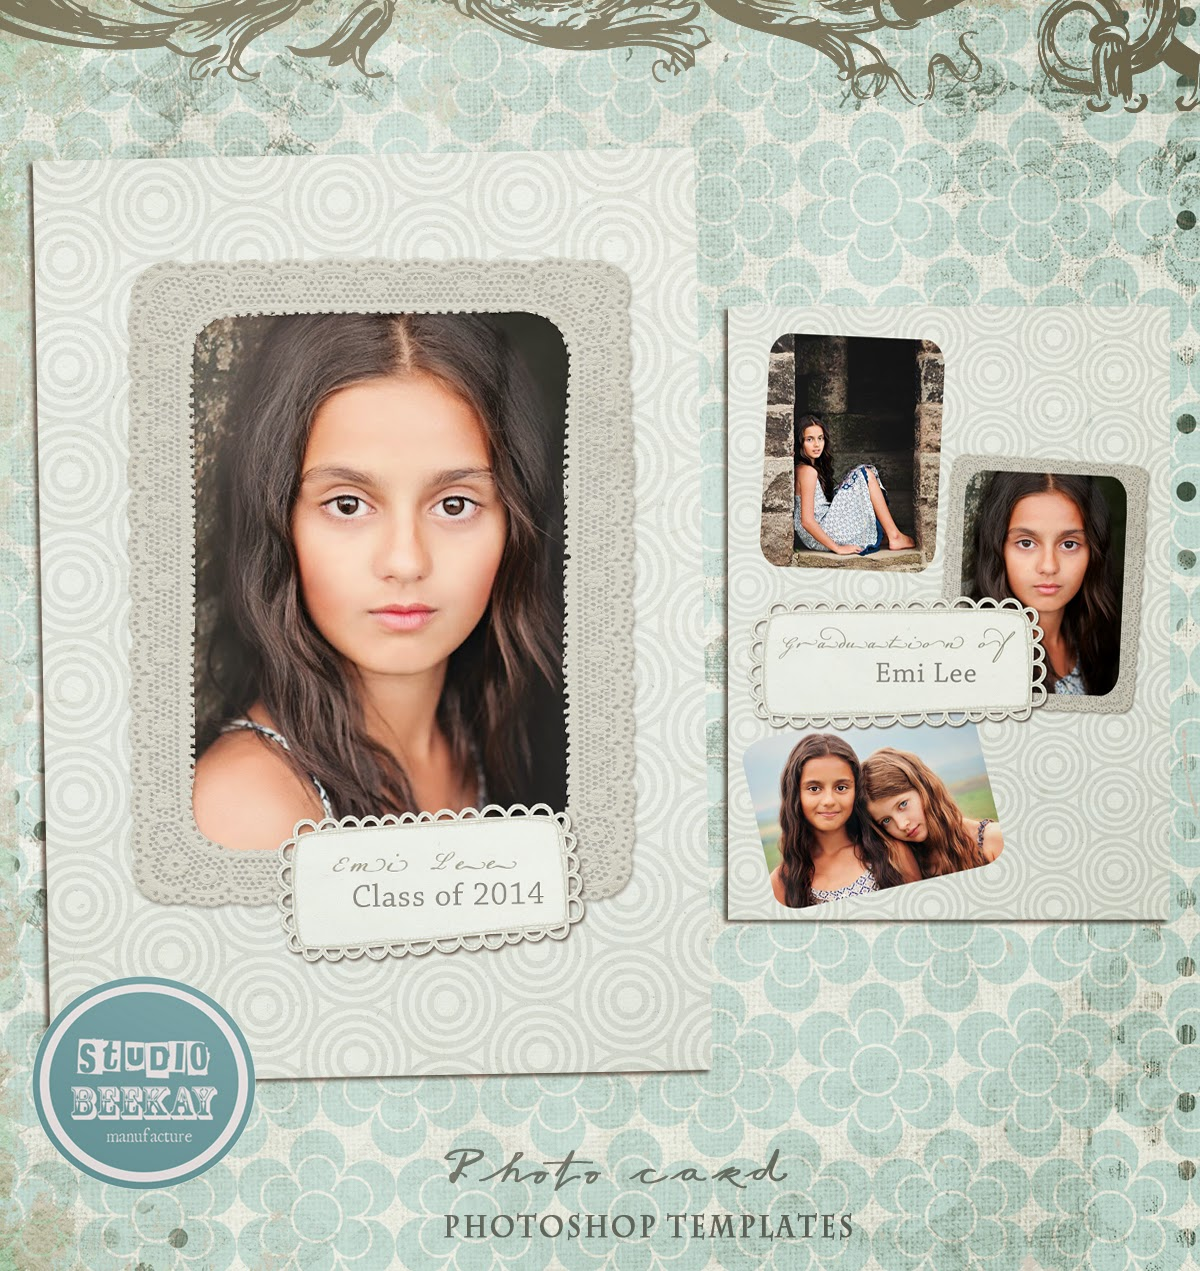 Photoshop Templates for Pro Photographers: Graduation announcement ...